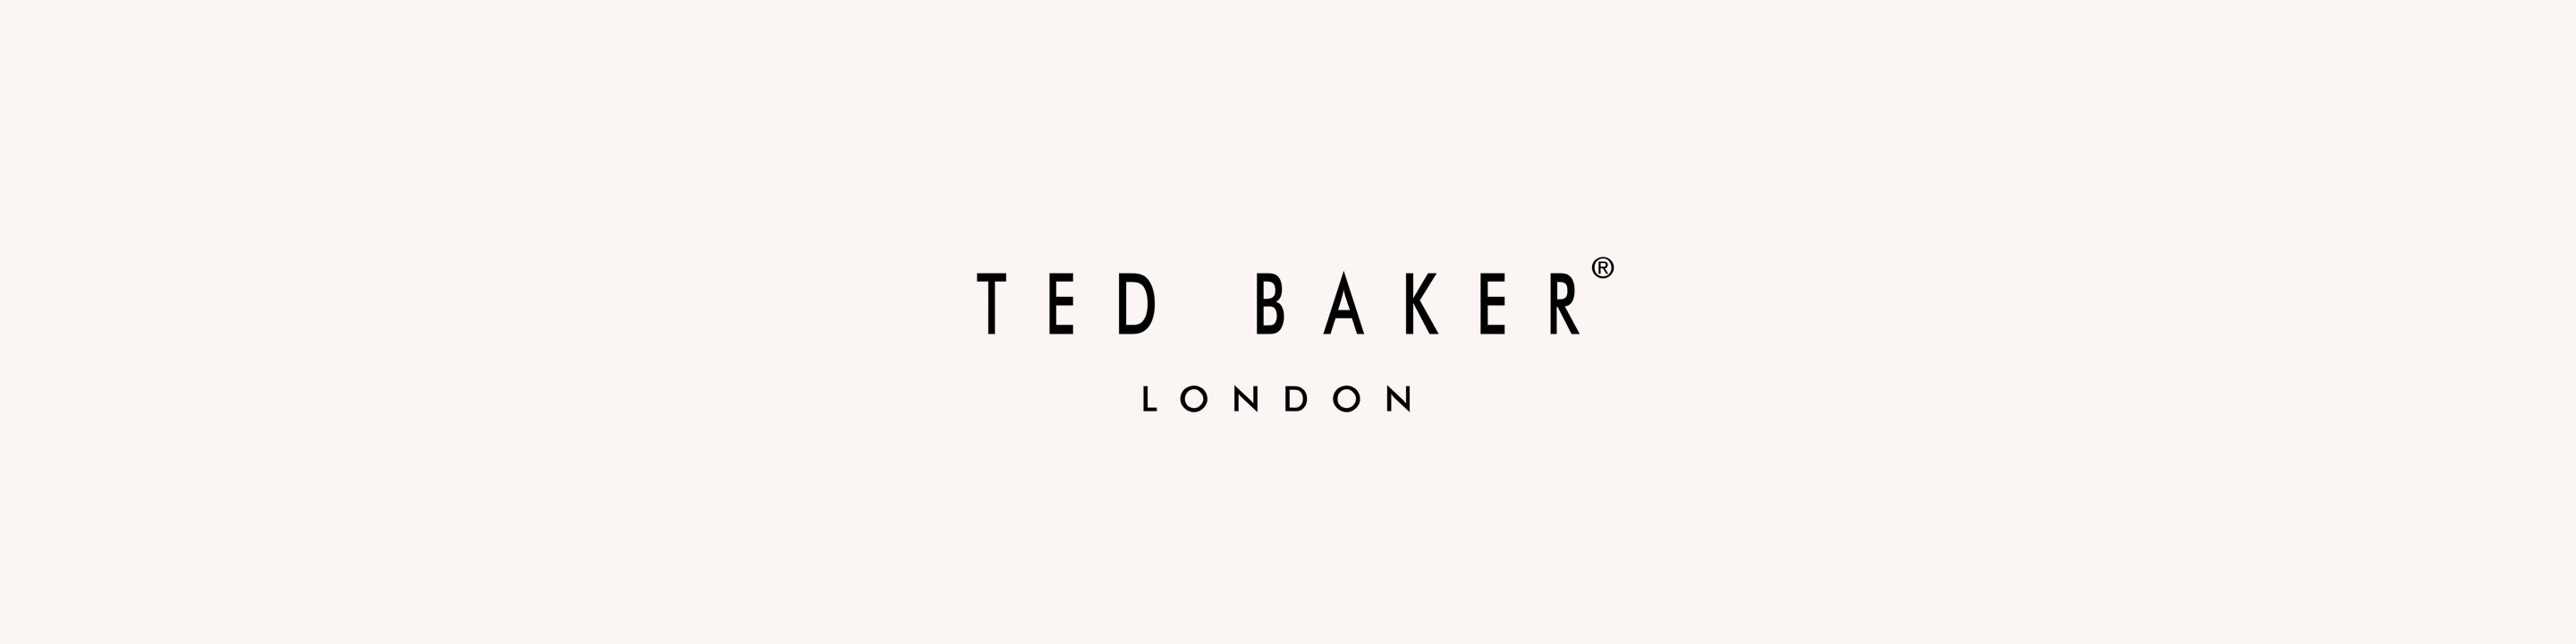 Ted Baker logo on background